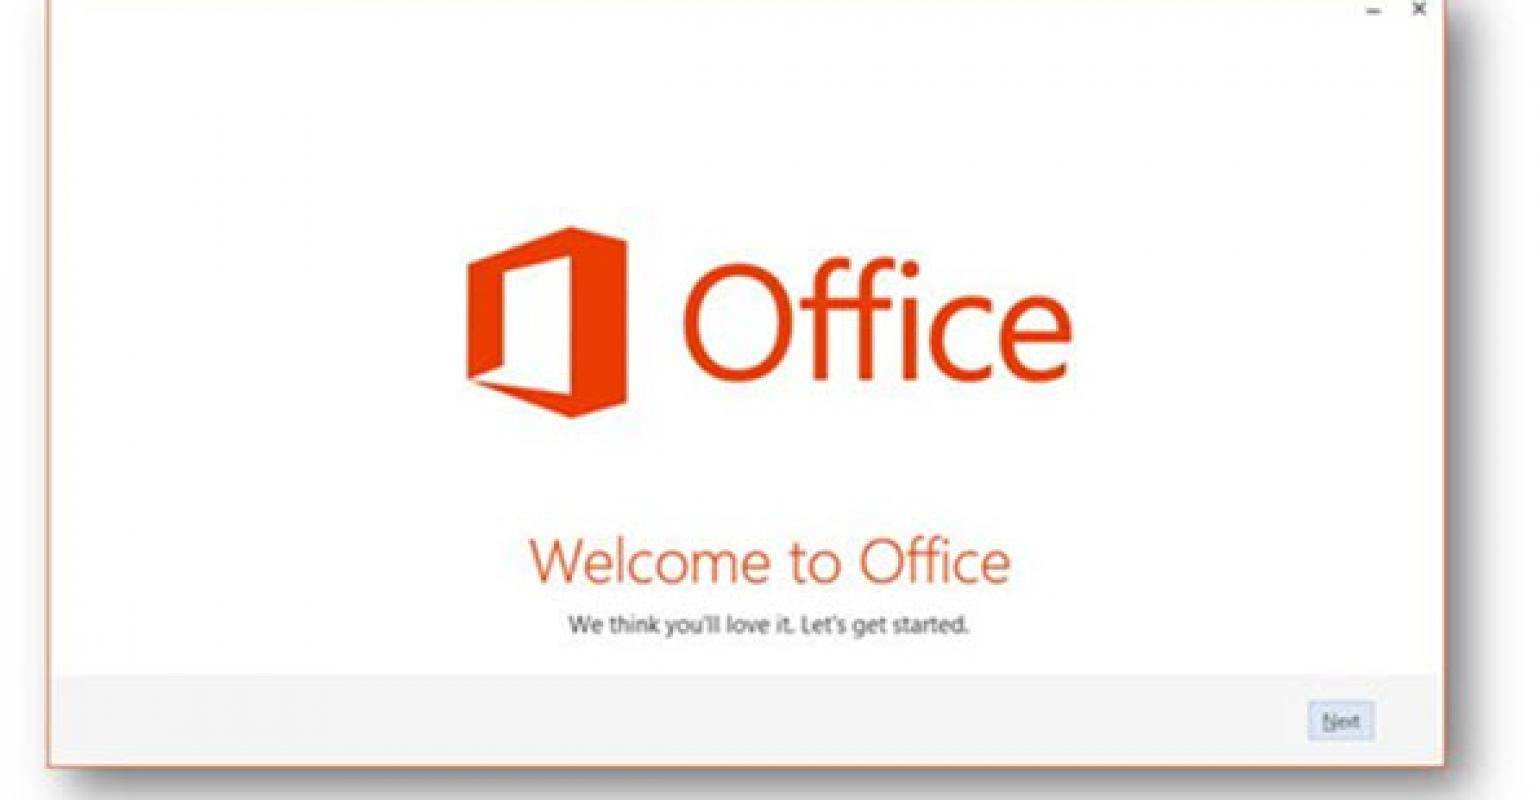 Determining if an Office Installation is Click-to-Run or Not